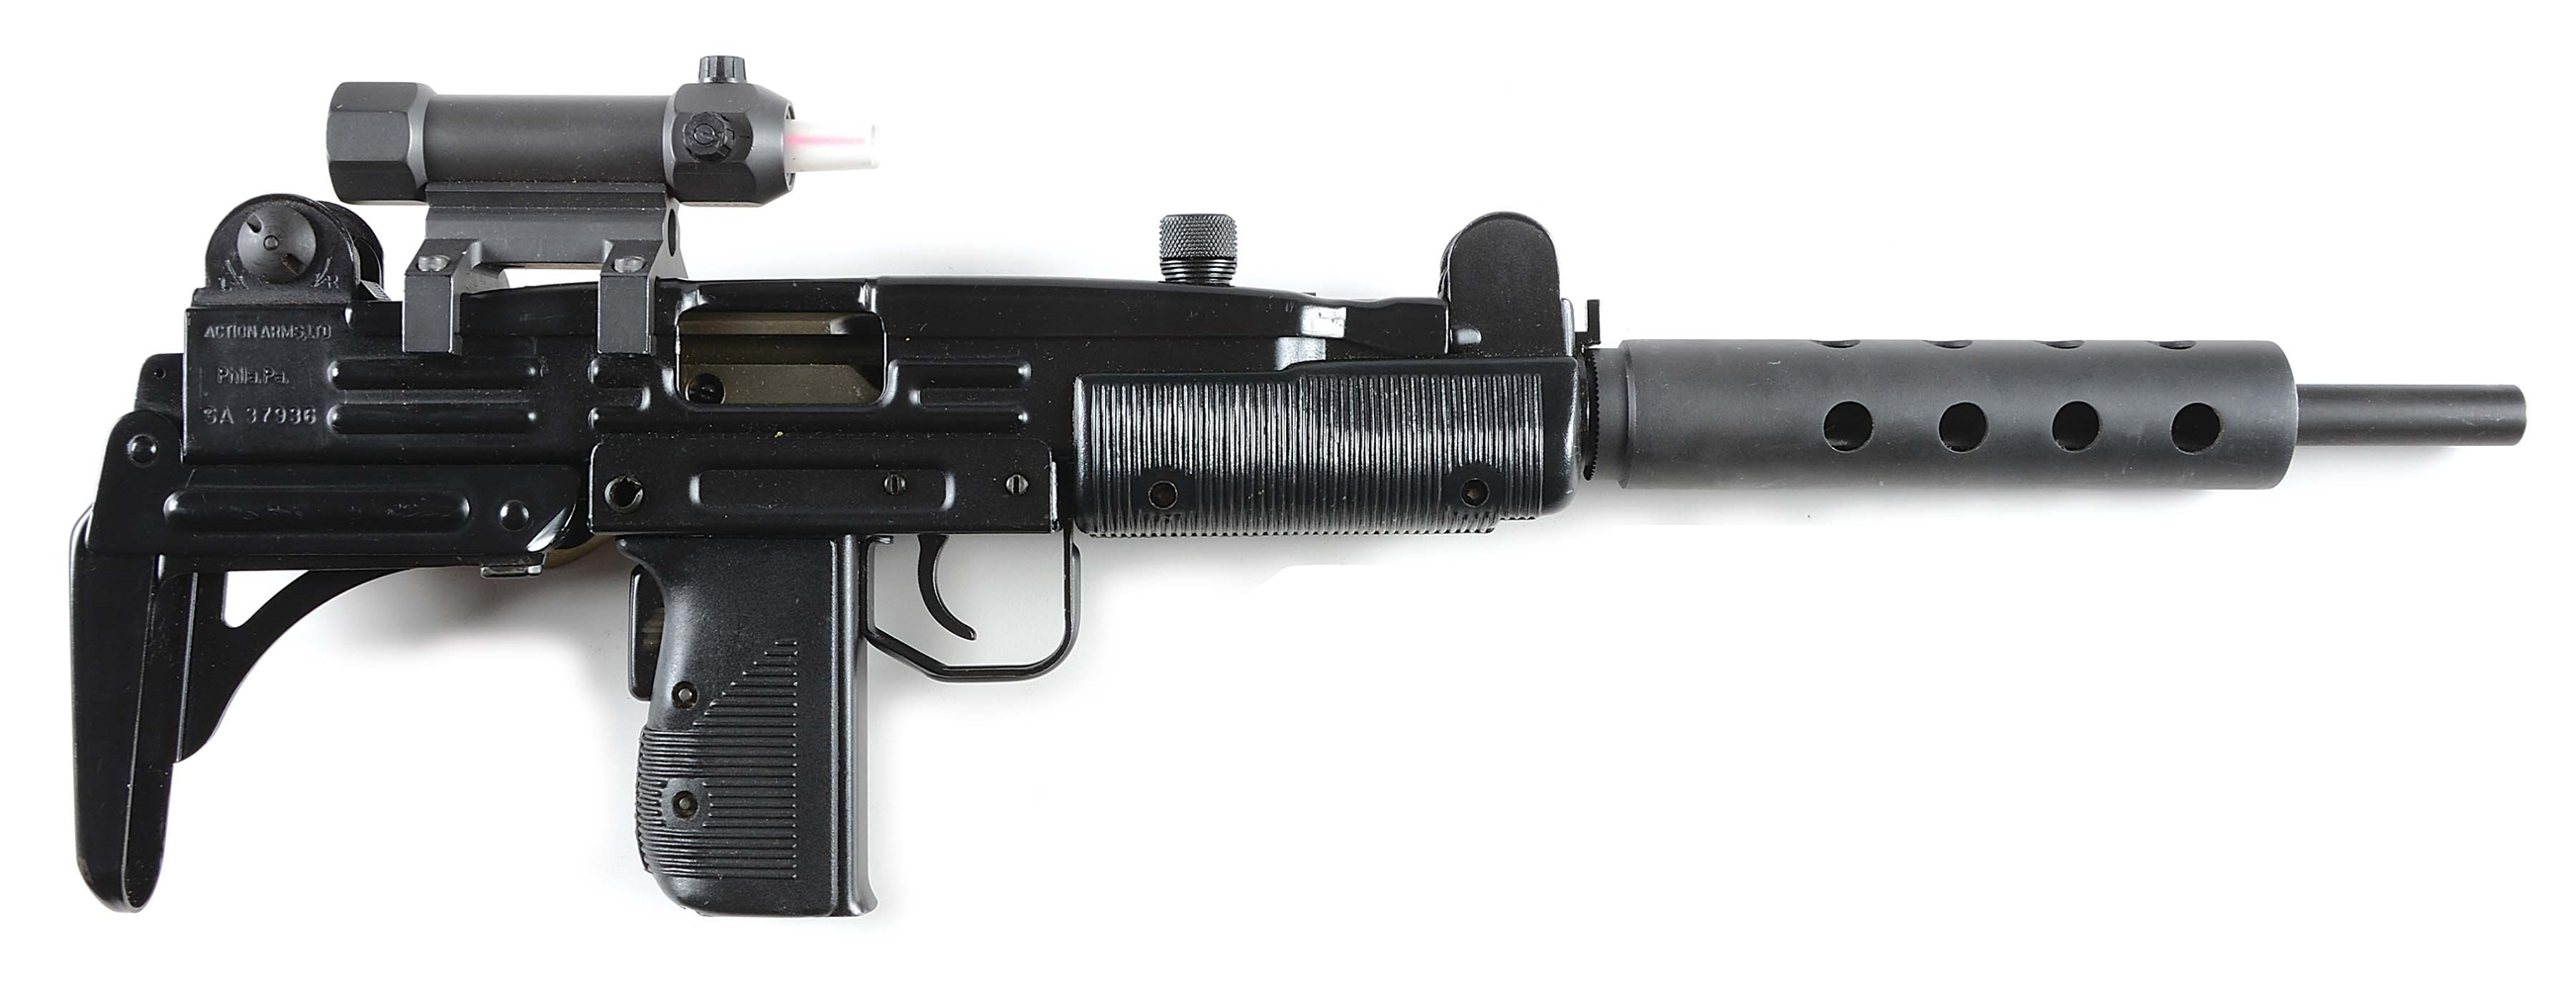 (M) IMI Uzi Model B Semi-Auto Rifle with Carrying Case and Accessories.